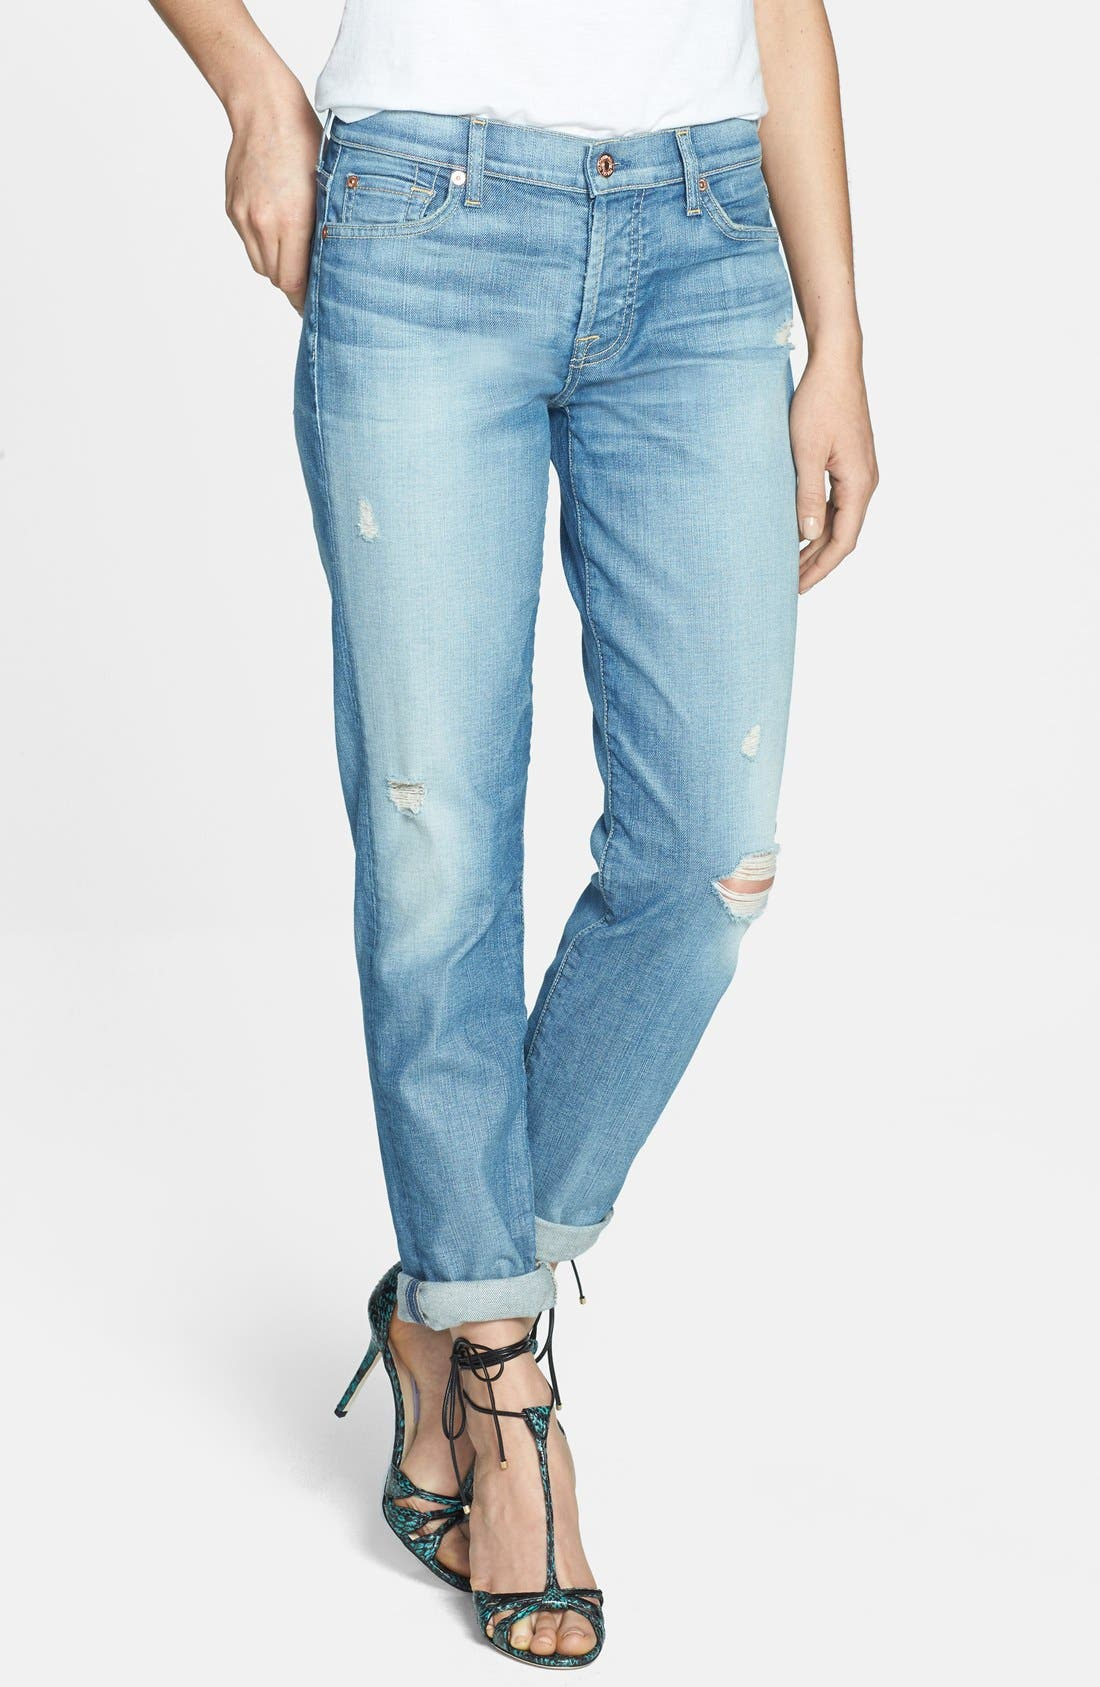 Alternate Image 1 Selected - 7 For All Mankind® 'Josefina' Distressed Boyfriend Jeans (Authentic Pacific Grove)